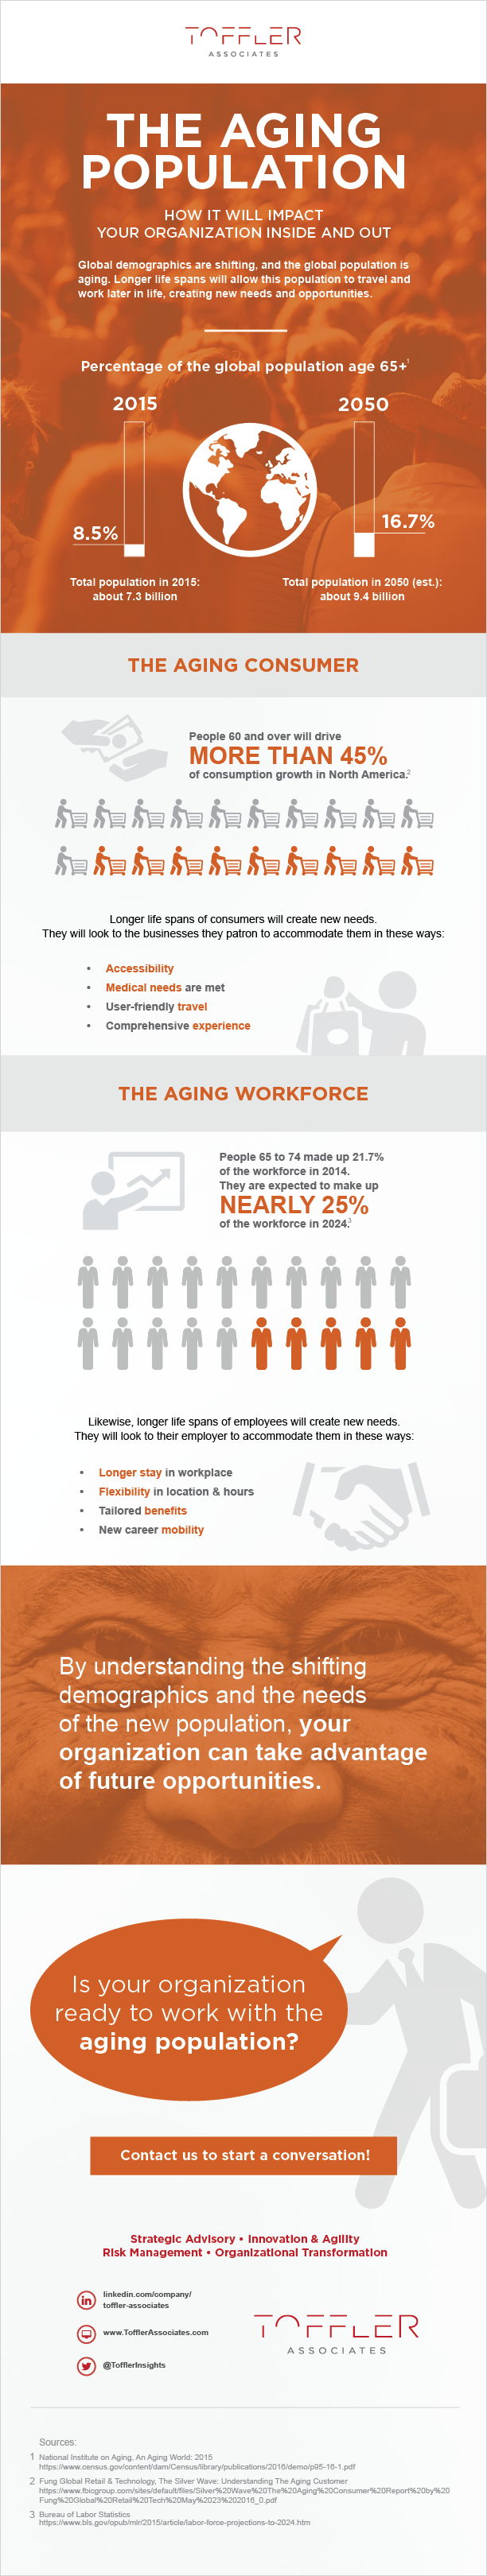 TA_Aging_Population_Infographic